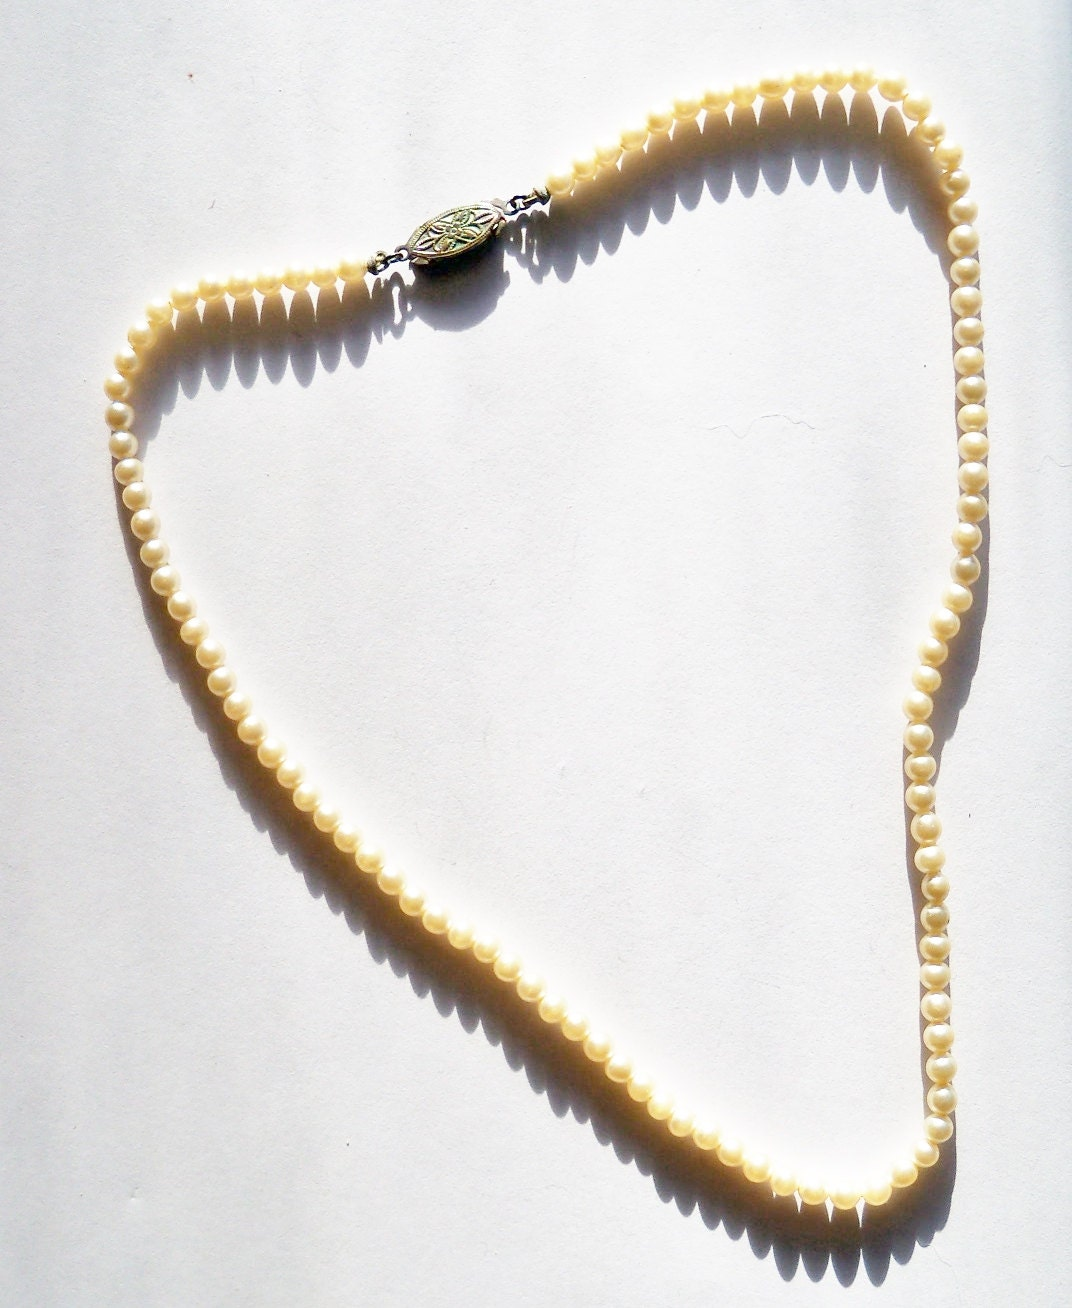 Vintage Pearl Choker Necklace: Pearl Necklace Vintage Choker-Length Wedding Junior Attendant